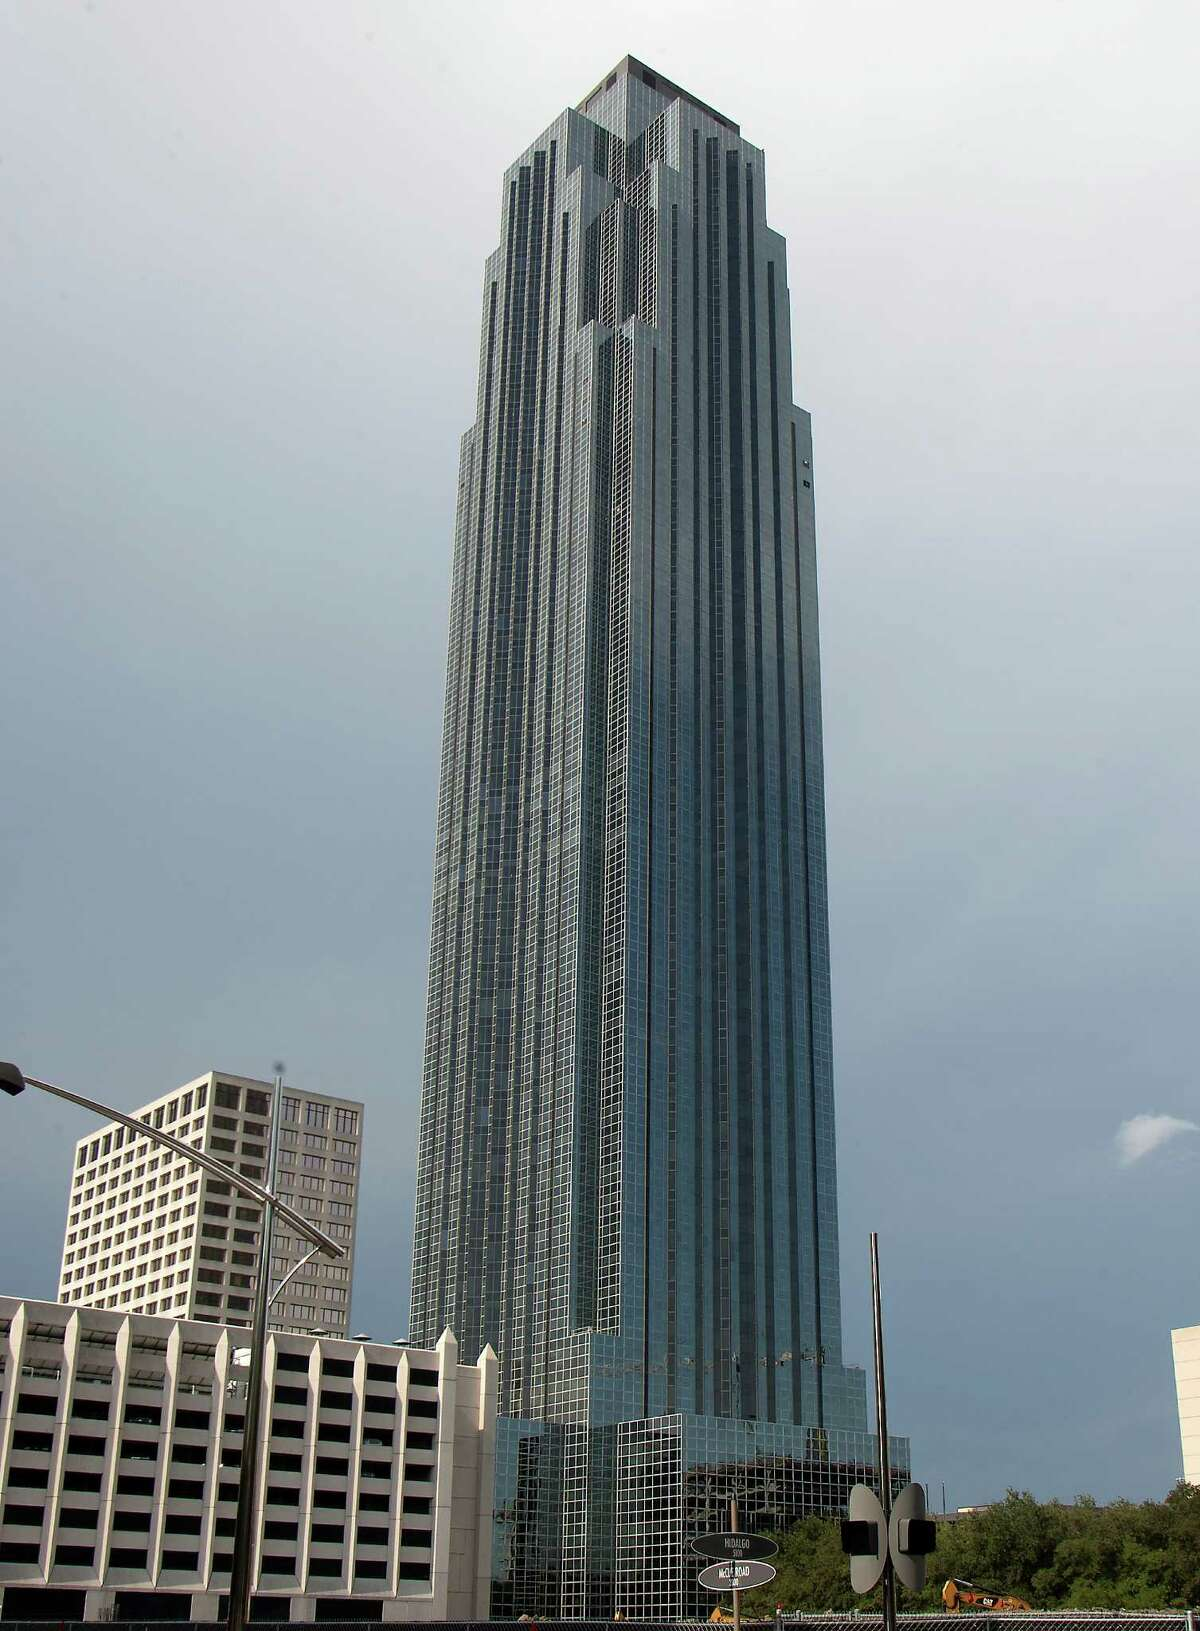 The Williams Tower at 2800 Post Oak on Friday, Aug. 10, 2012, in Houston, TX. ( J. Patric Schneider / For the Chronicle )